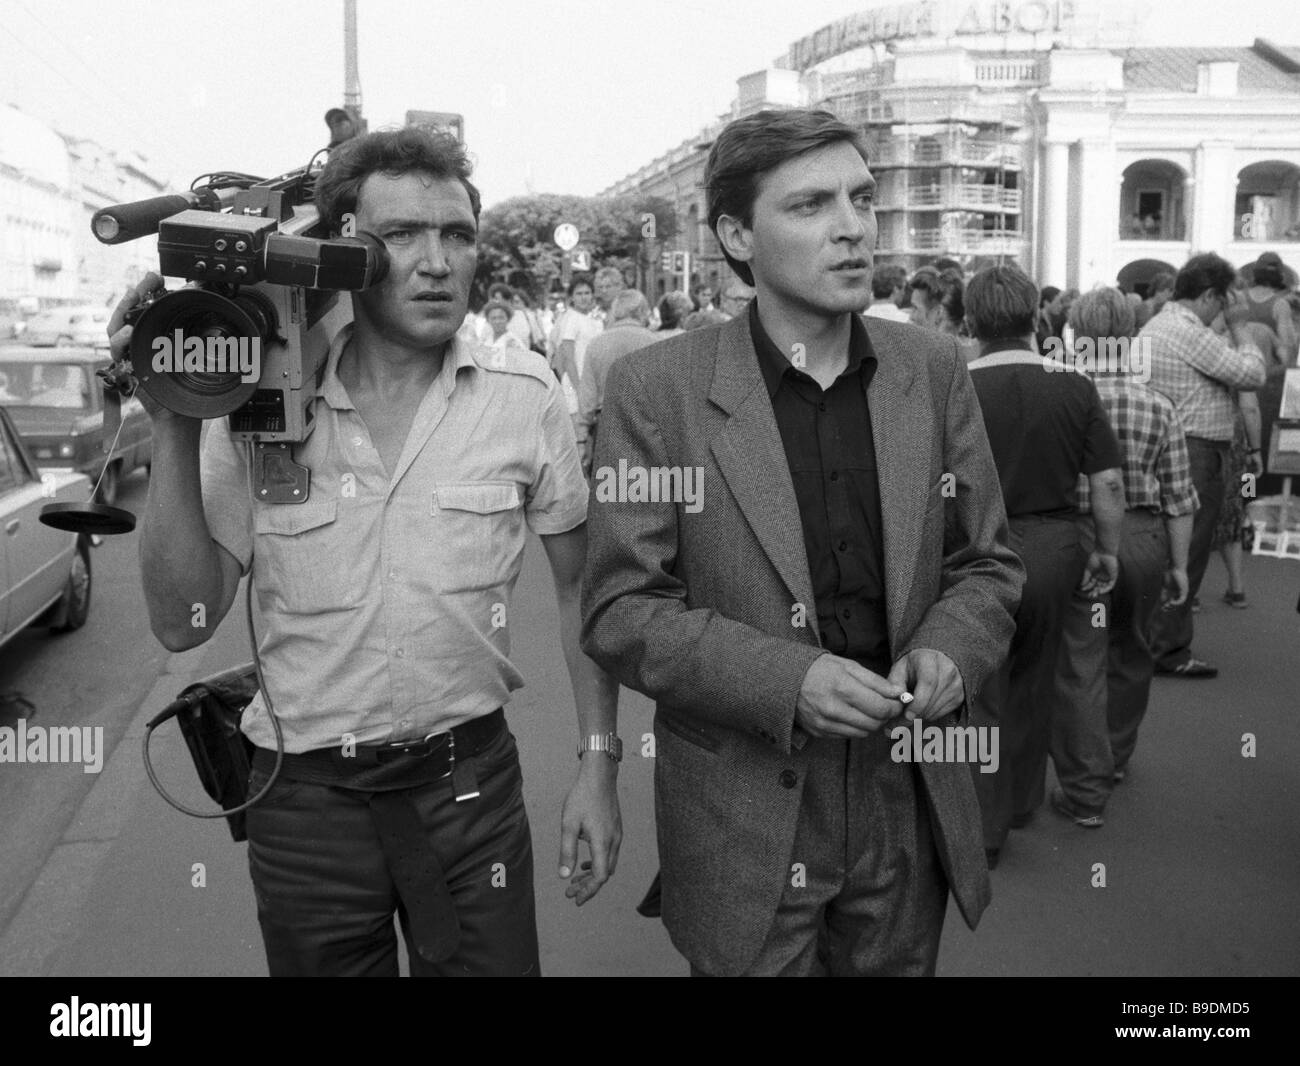 Alexander Nevzorov author and host of the 600 Seconds TV program right and cameraman Yury Shvedov in Leningrad - Stock Image